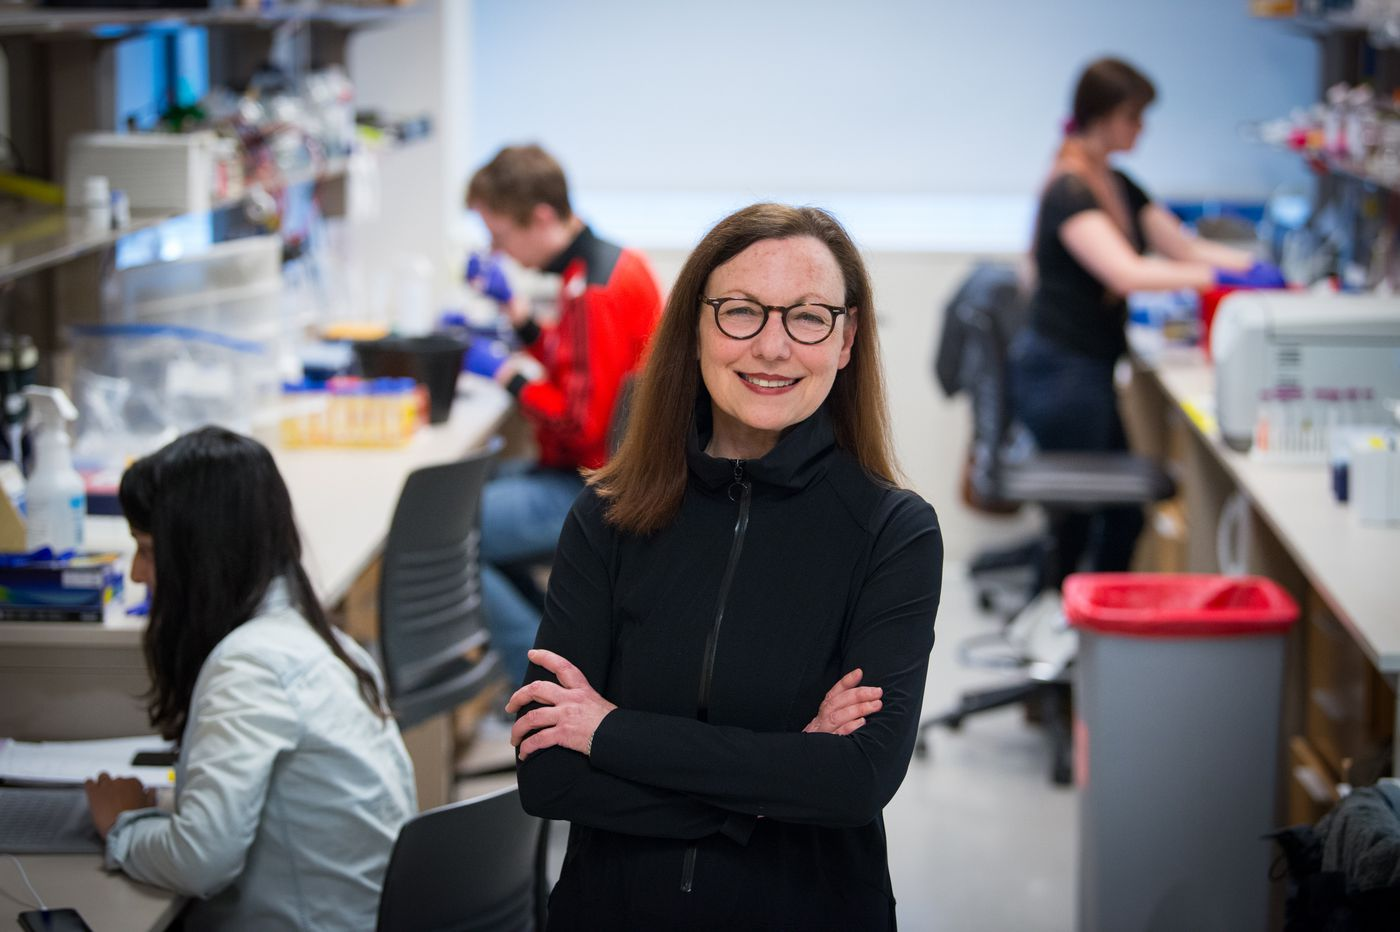 At a Penn lab, she studies ants that may offer clues into changing how humans age and behave